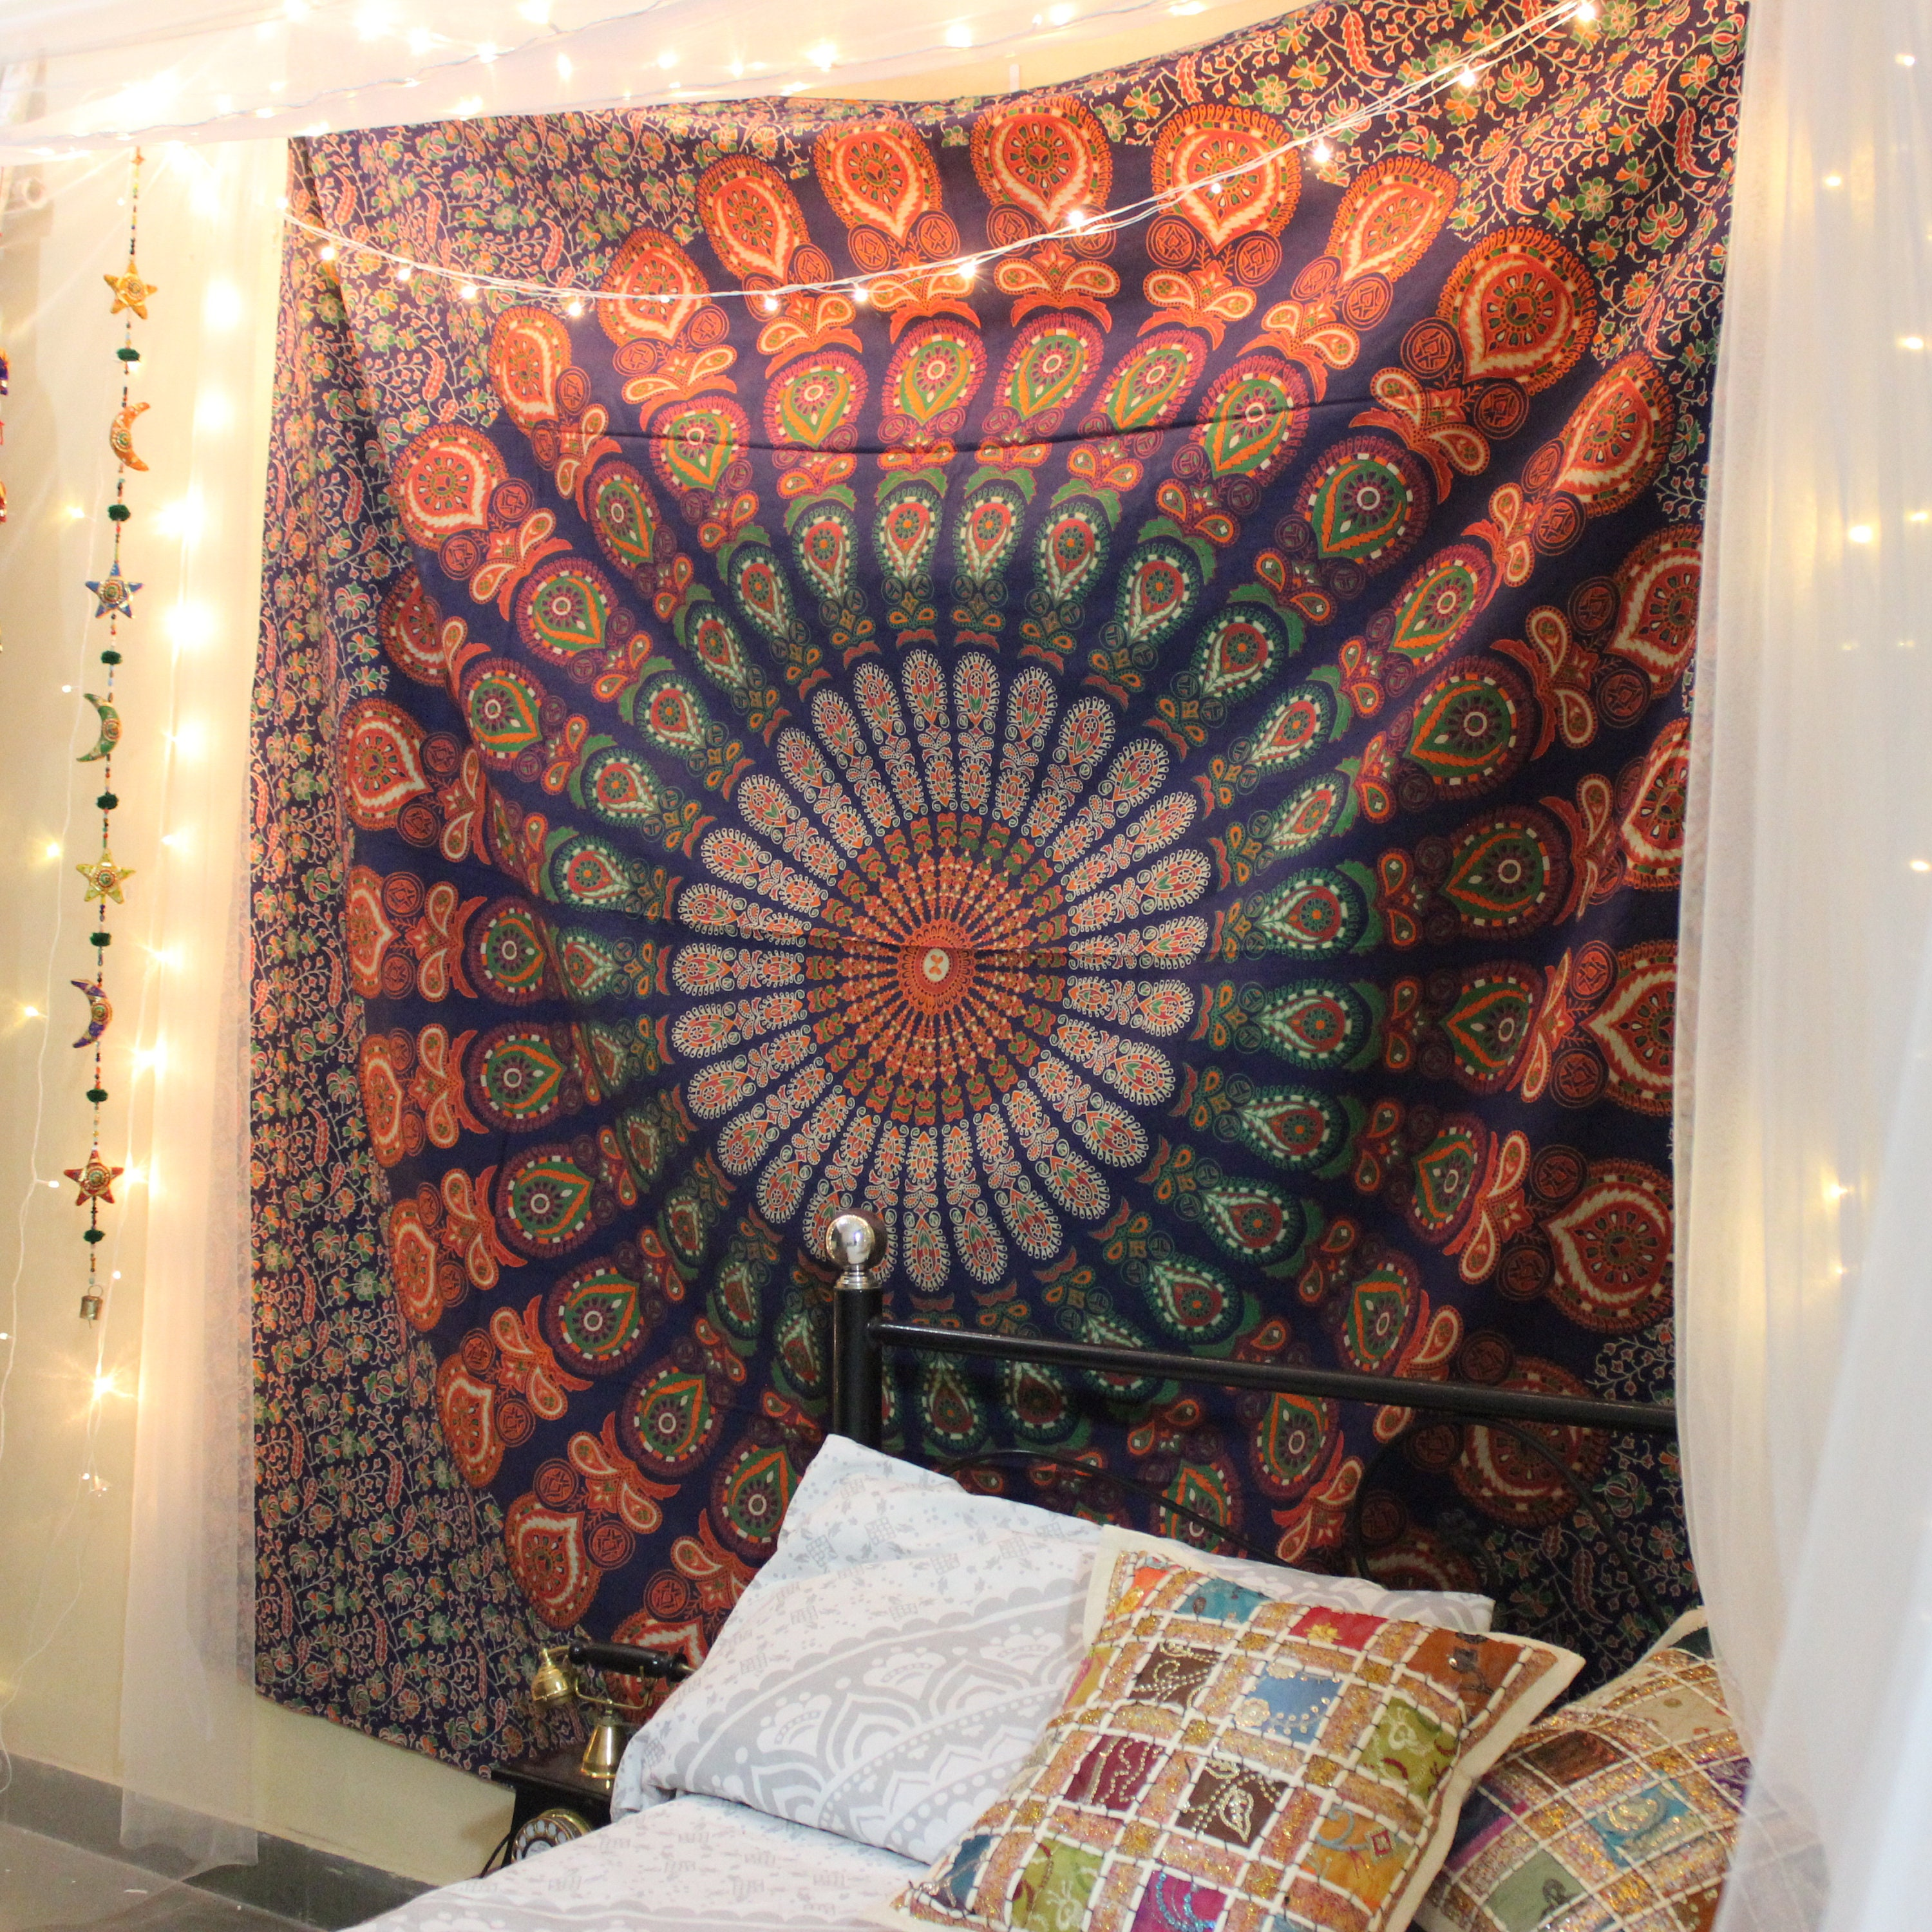 Cool Indian Tapestry Bohemian Tapestry Wall Hanging Mandala Tapestry Queen Bedspread Hippie Tapestry Boho Tapestry Dorm Tapestry Wall Decor